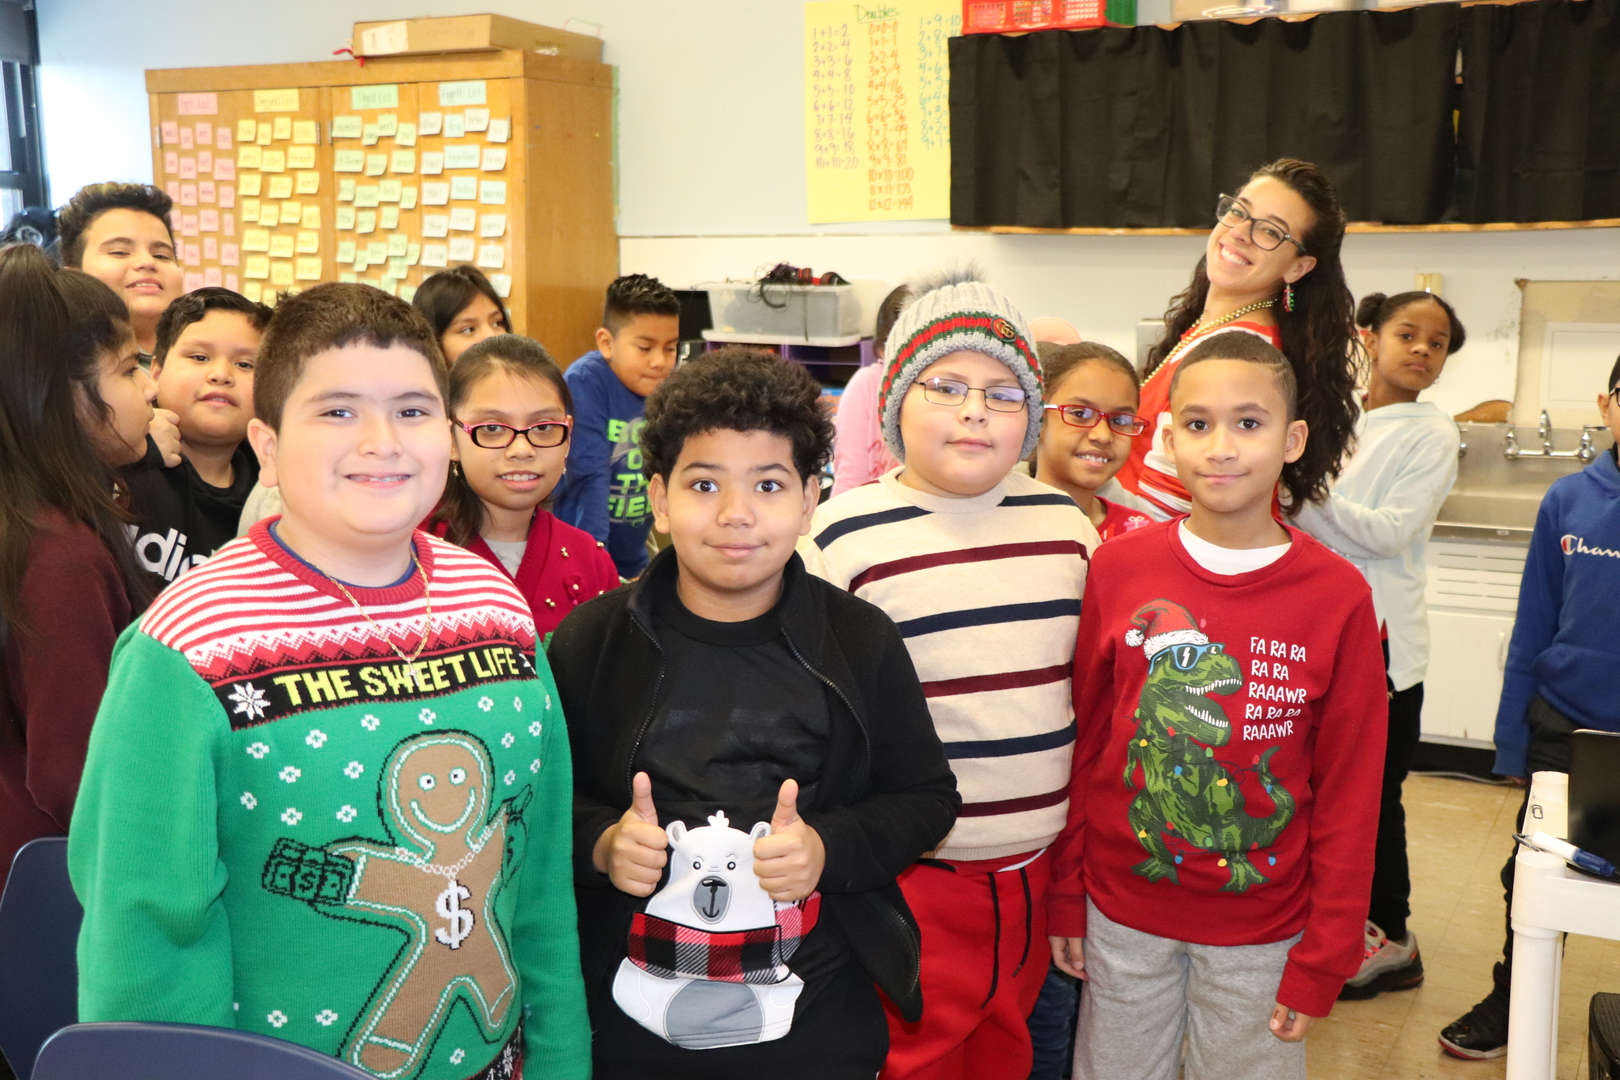 Ms. Parrino and her students.